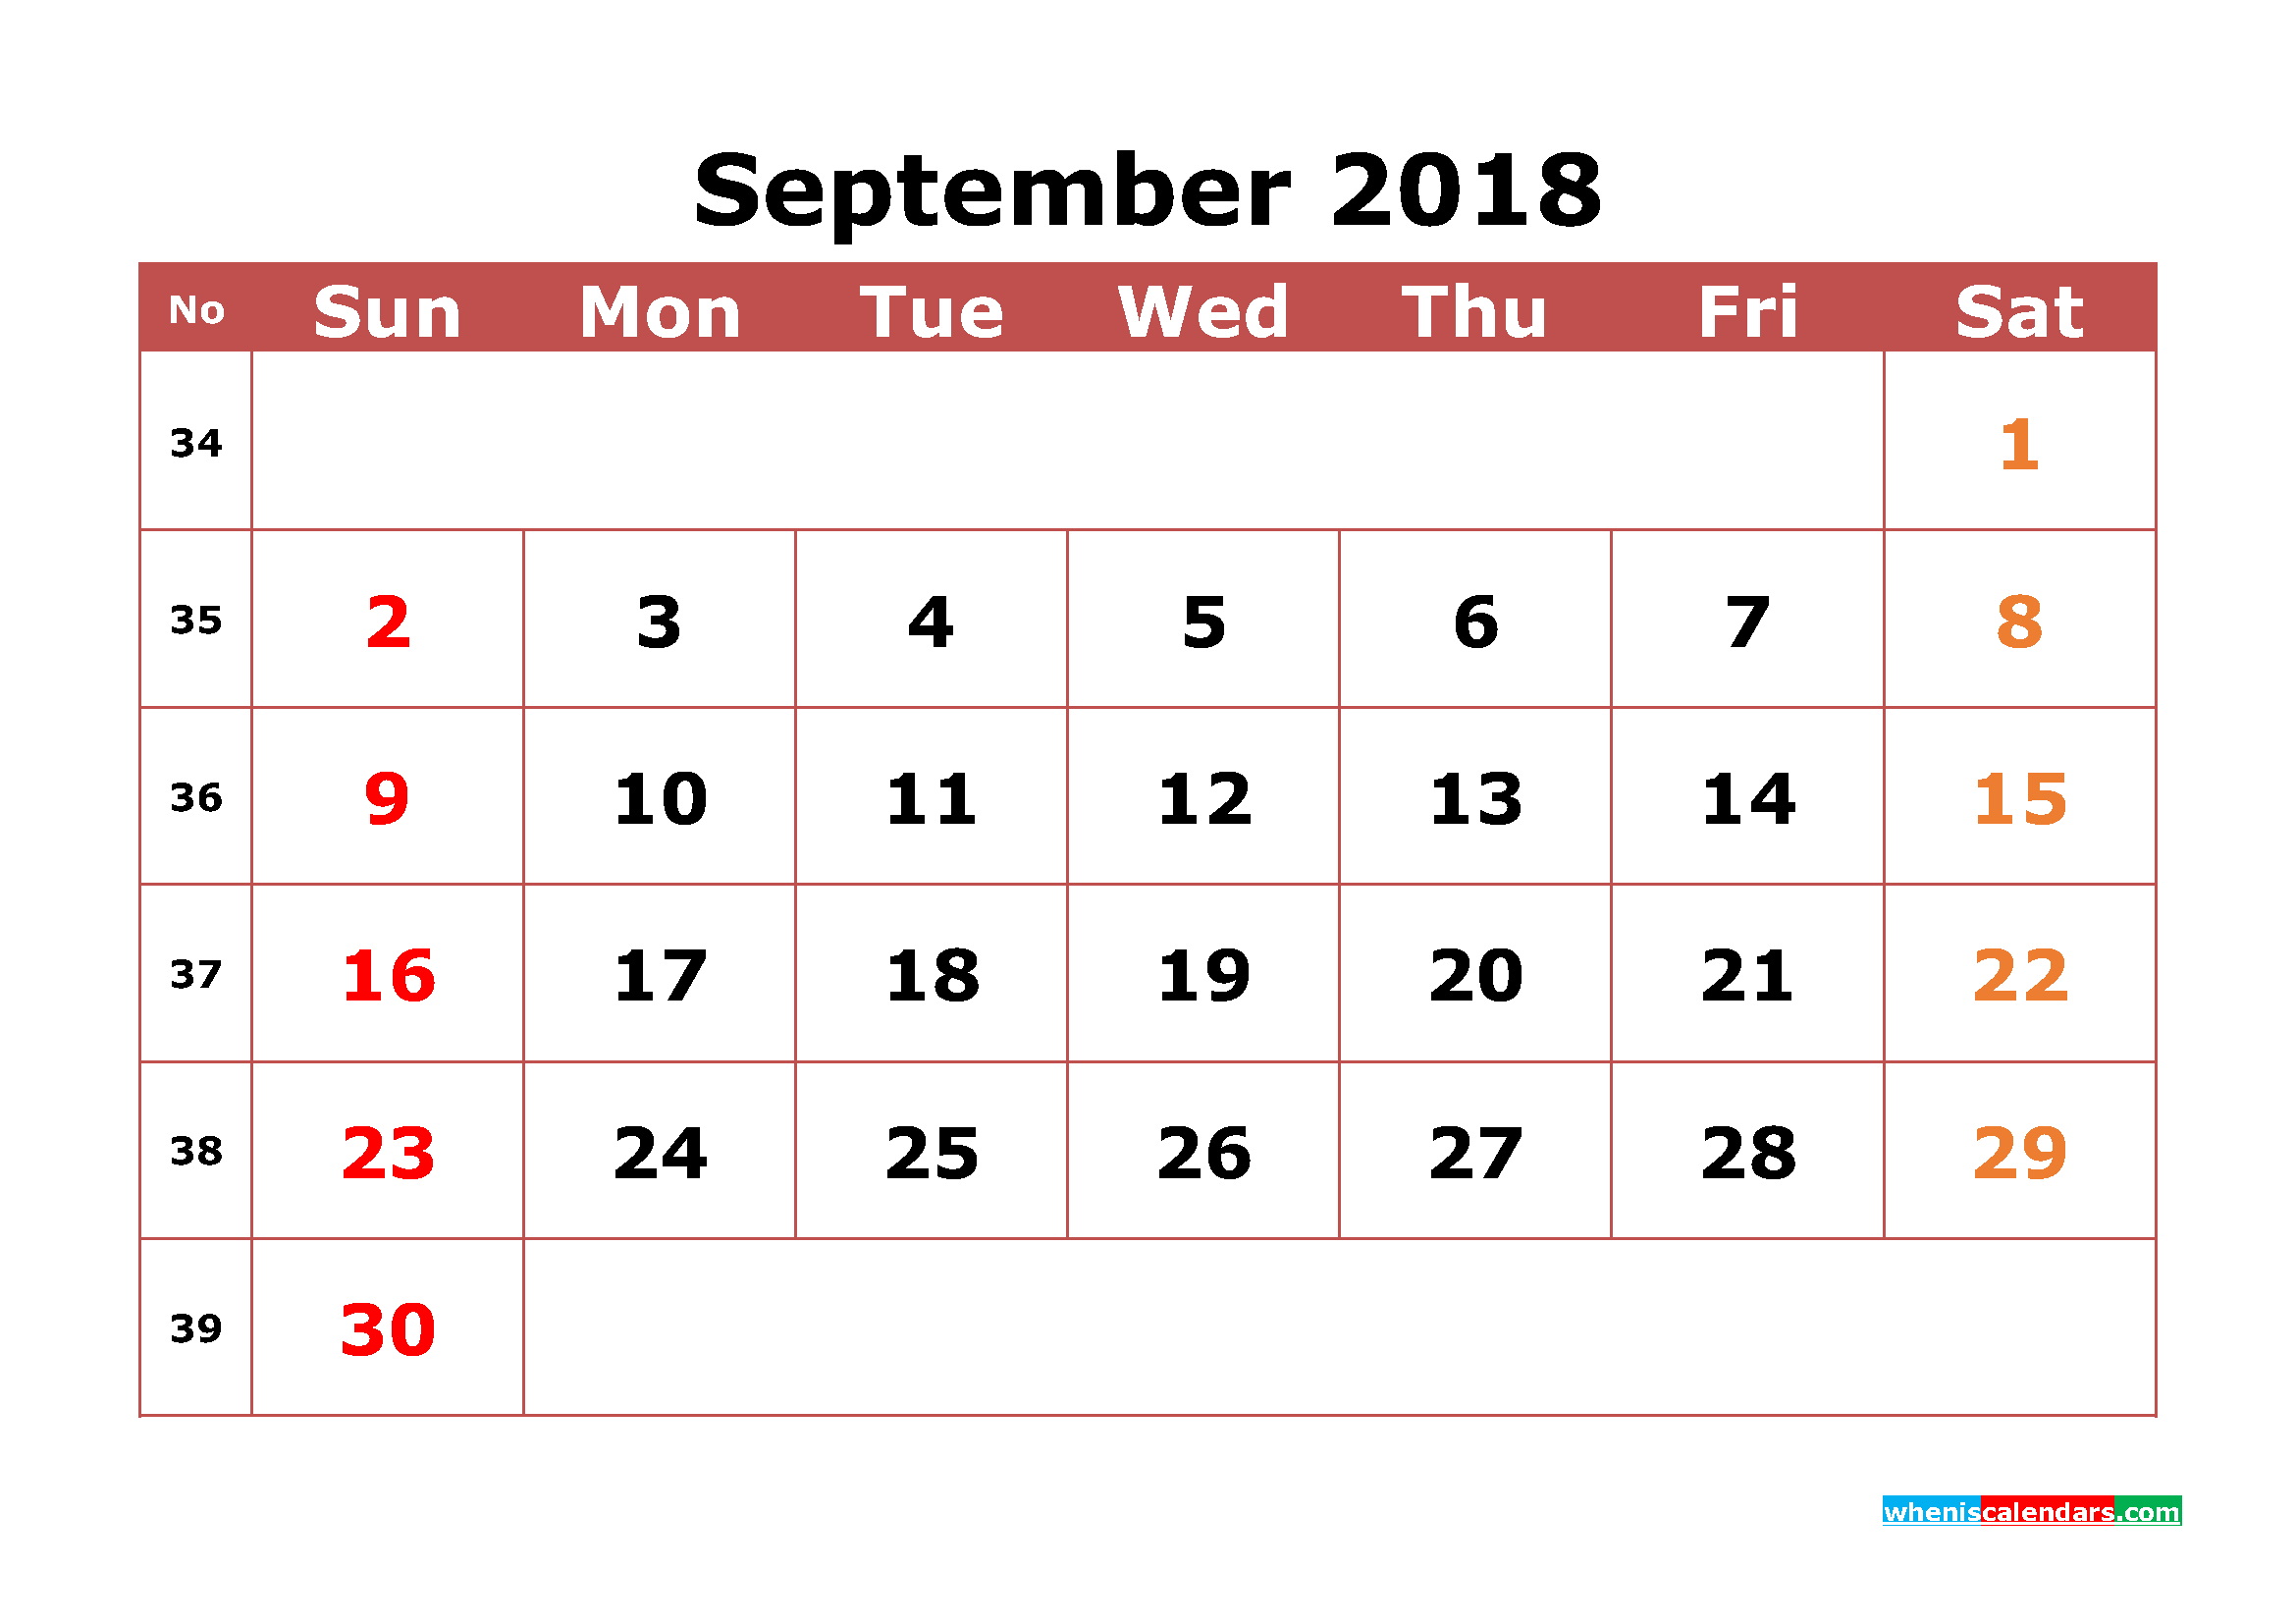 September 2018 Calendar Printable with Week Numbers Image